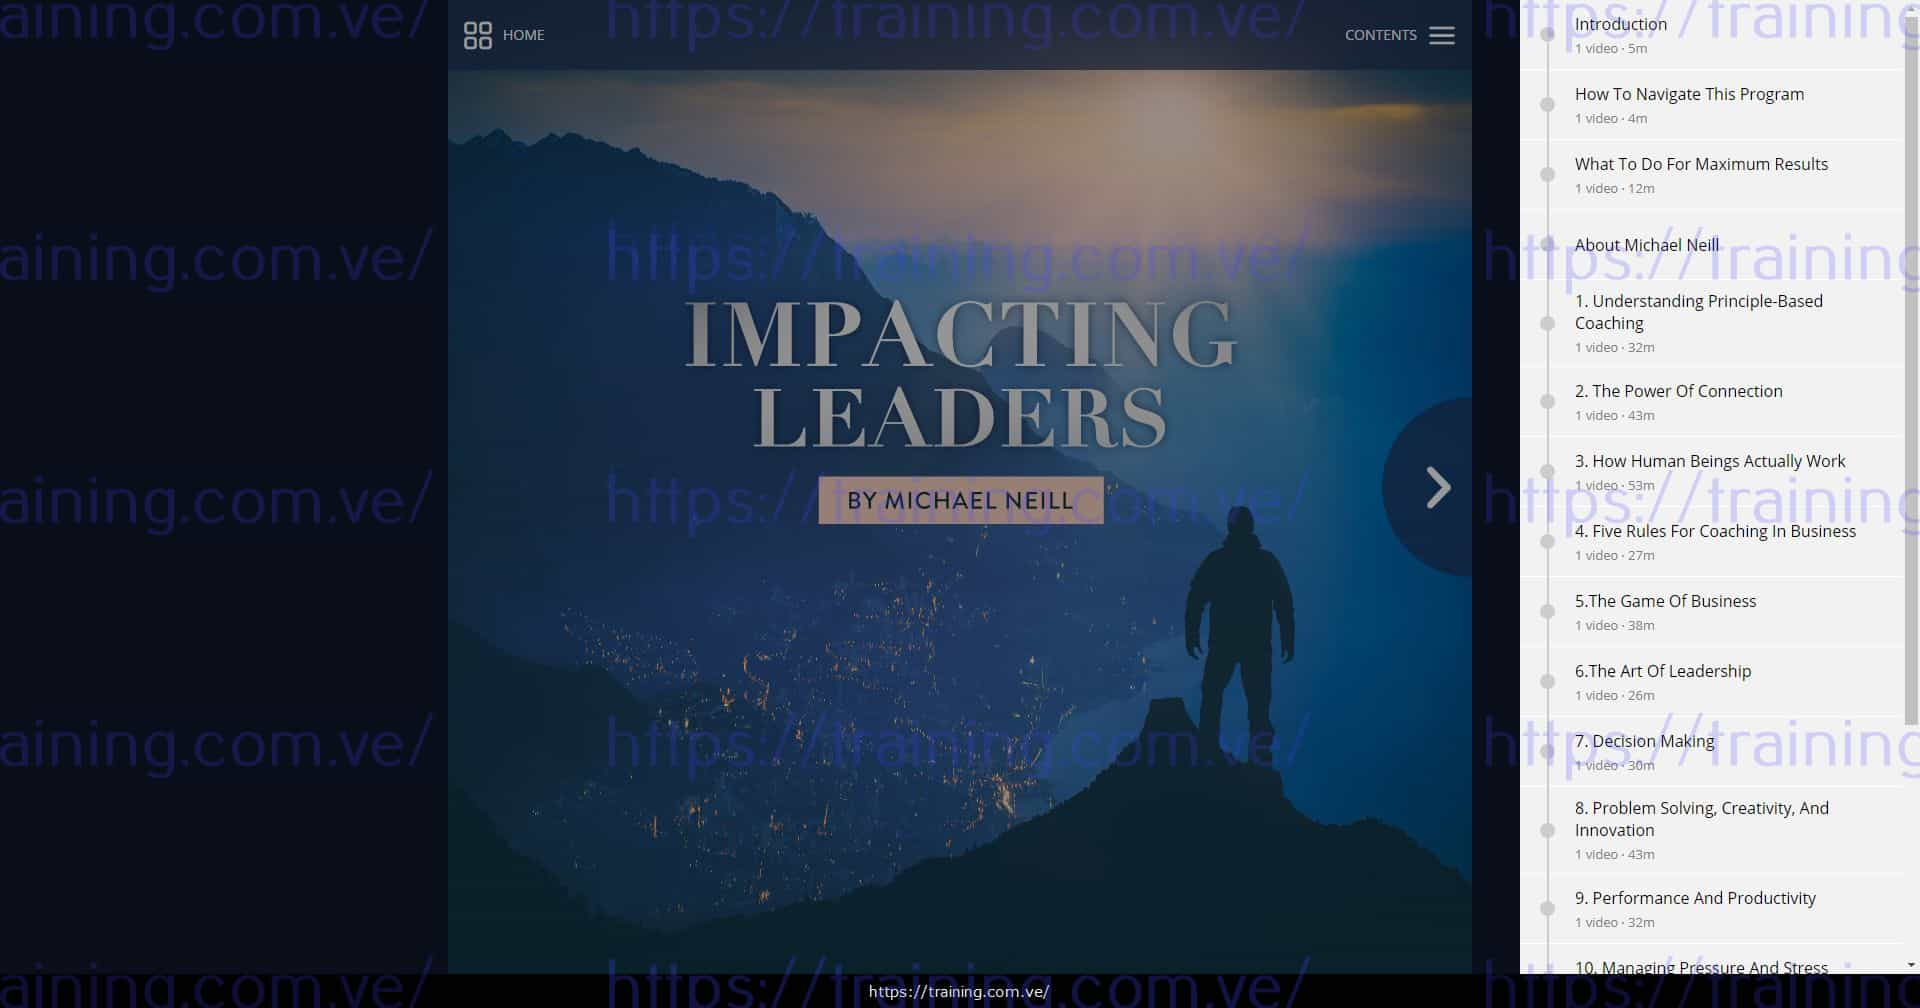 Impacting Leaders by Michael Neill Download